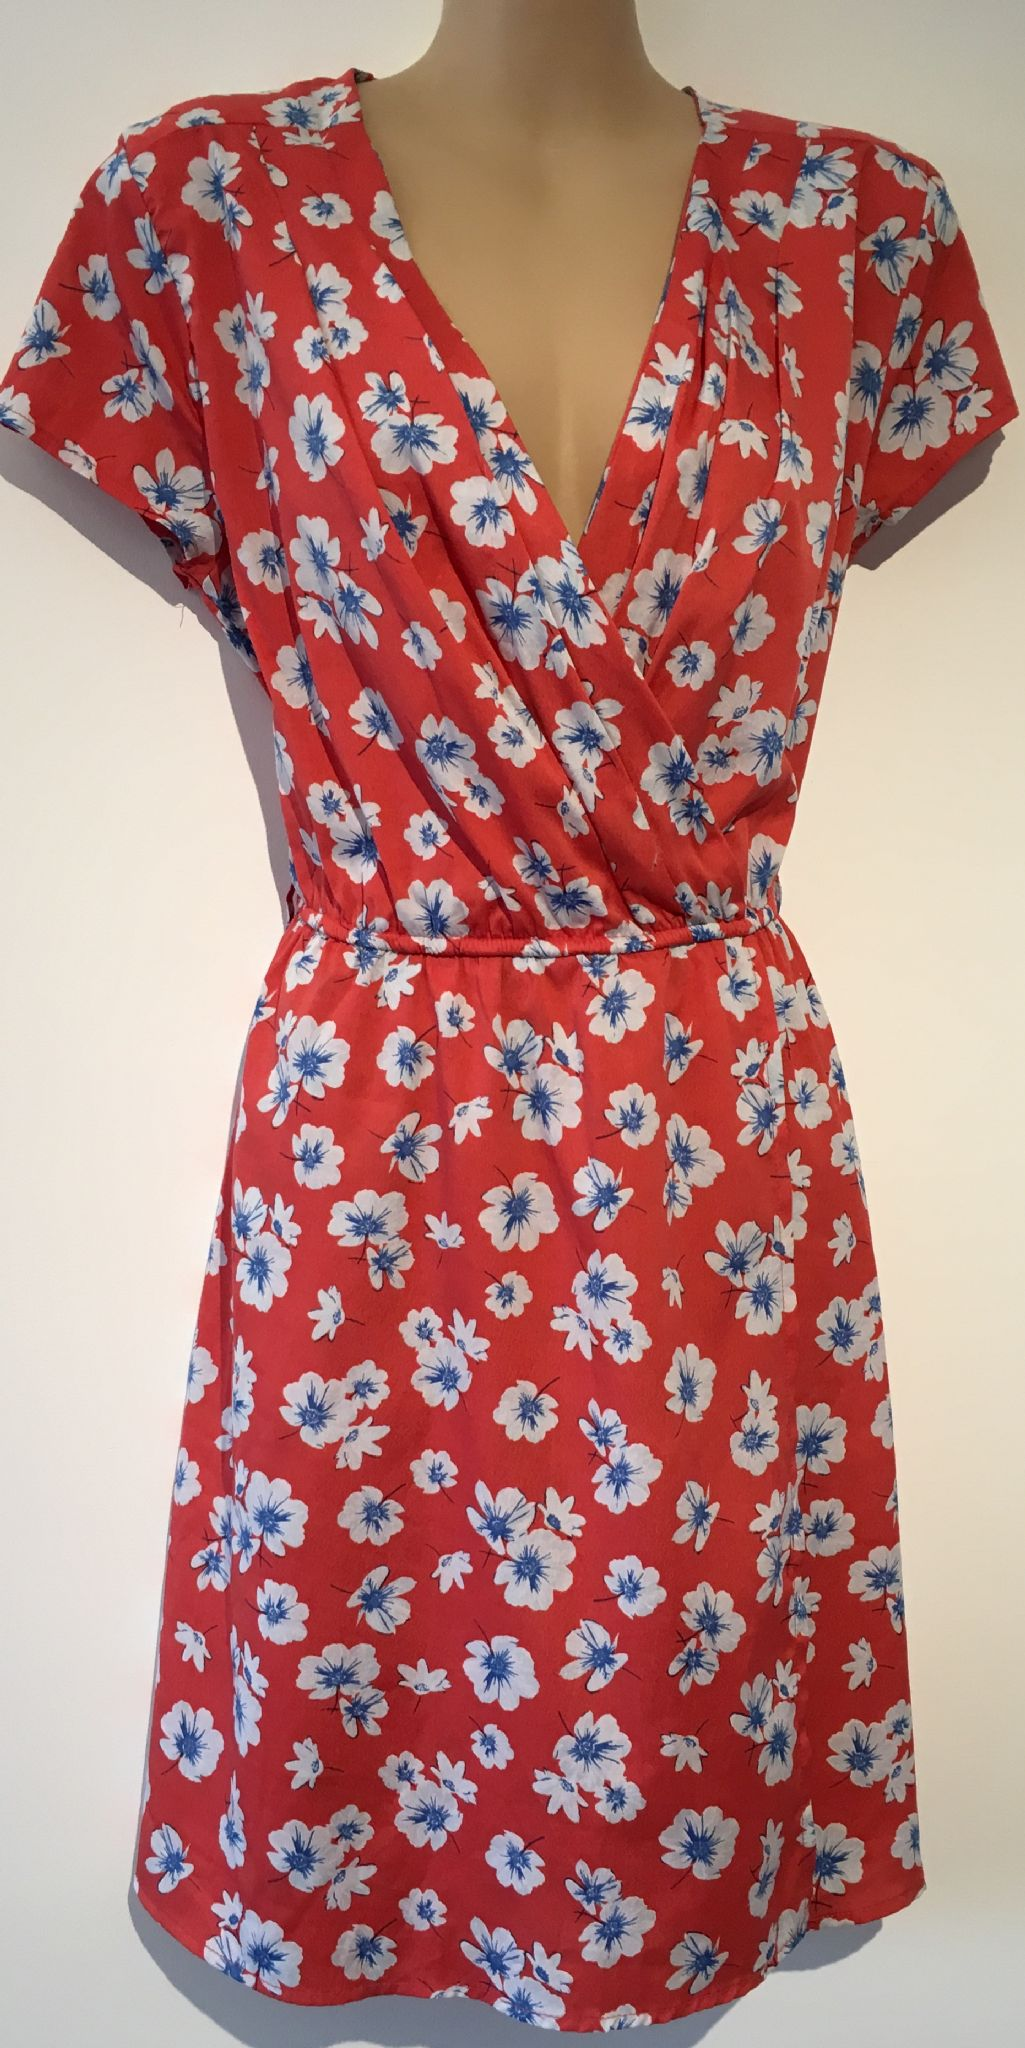 fd4398bac51 NEW LOOK RED FLORAL WRAP CHEST DRESS SIZE 12